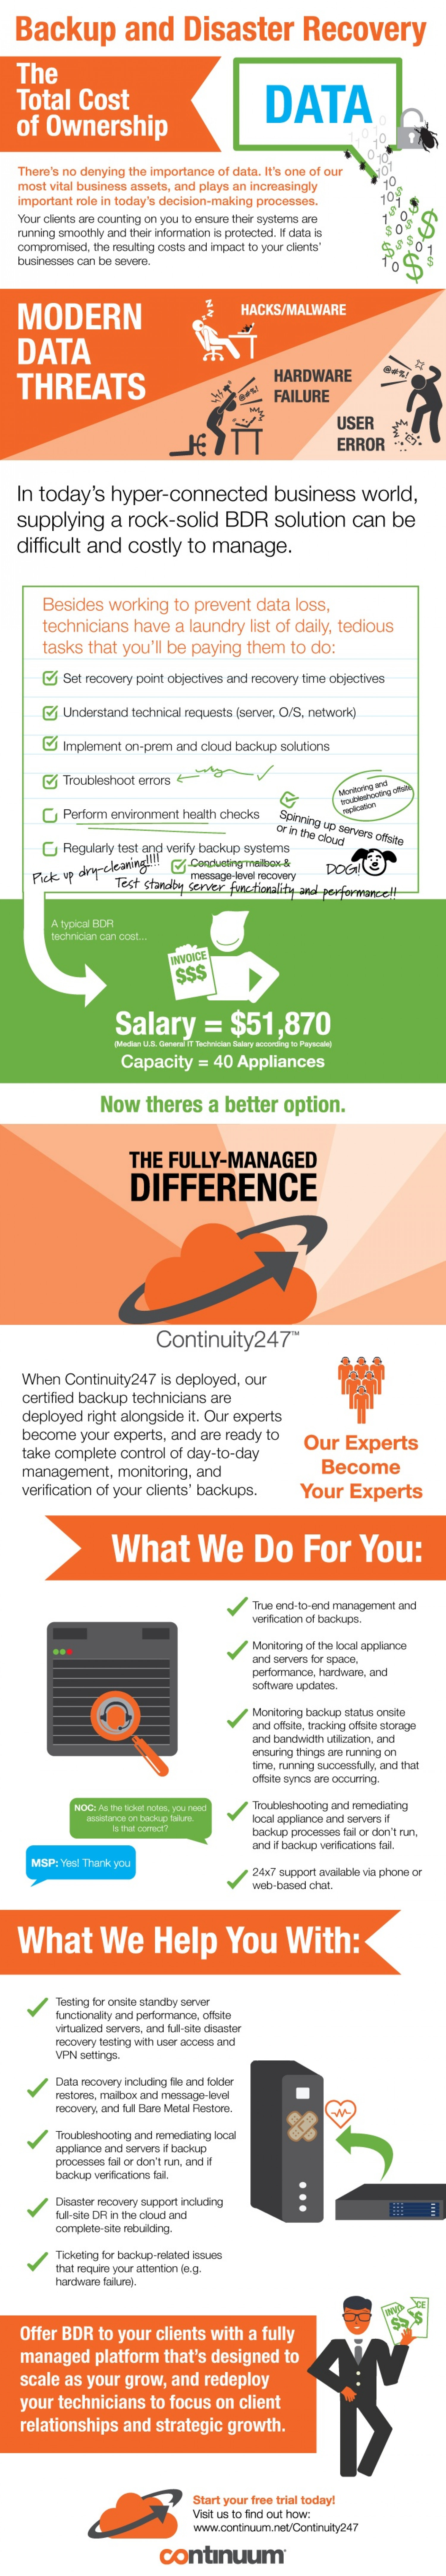 What Does it Take to Actually Manage a Backup and Disaster Recovery (BDR) Solution? Infographic